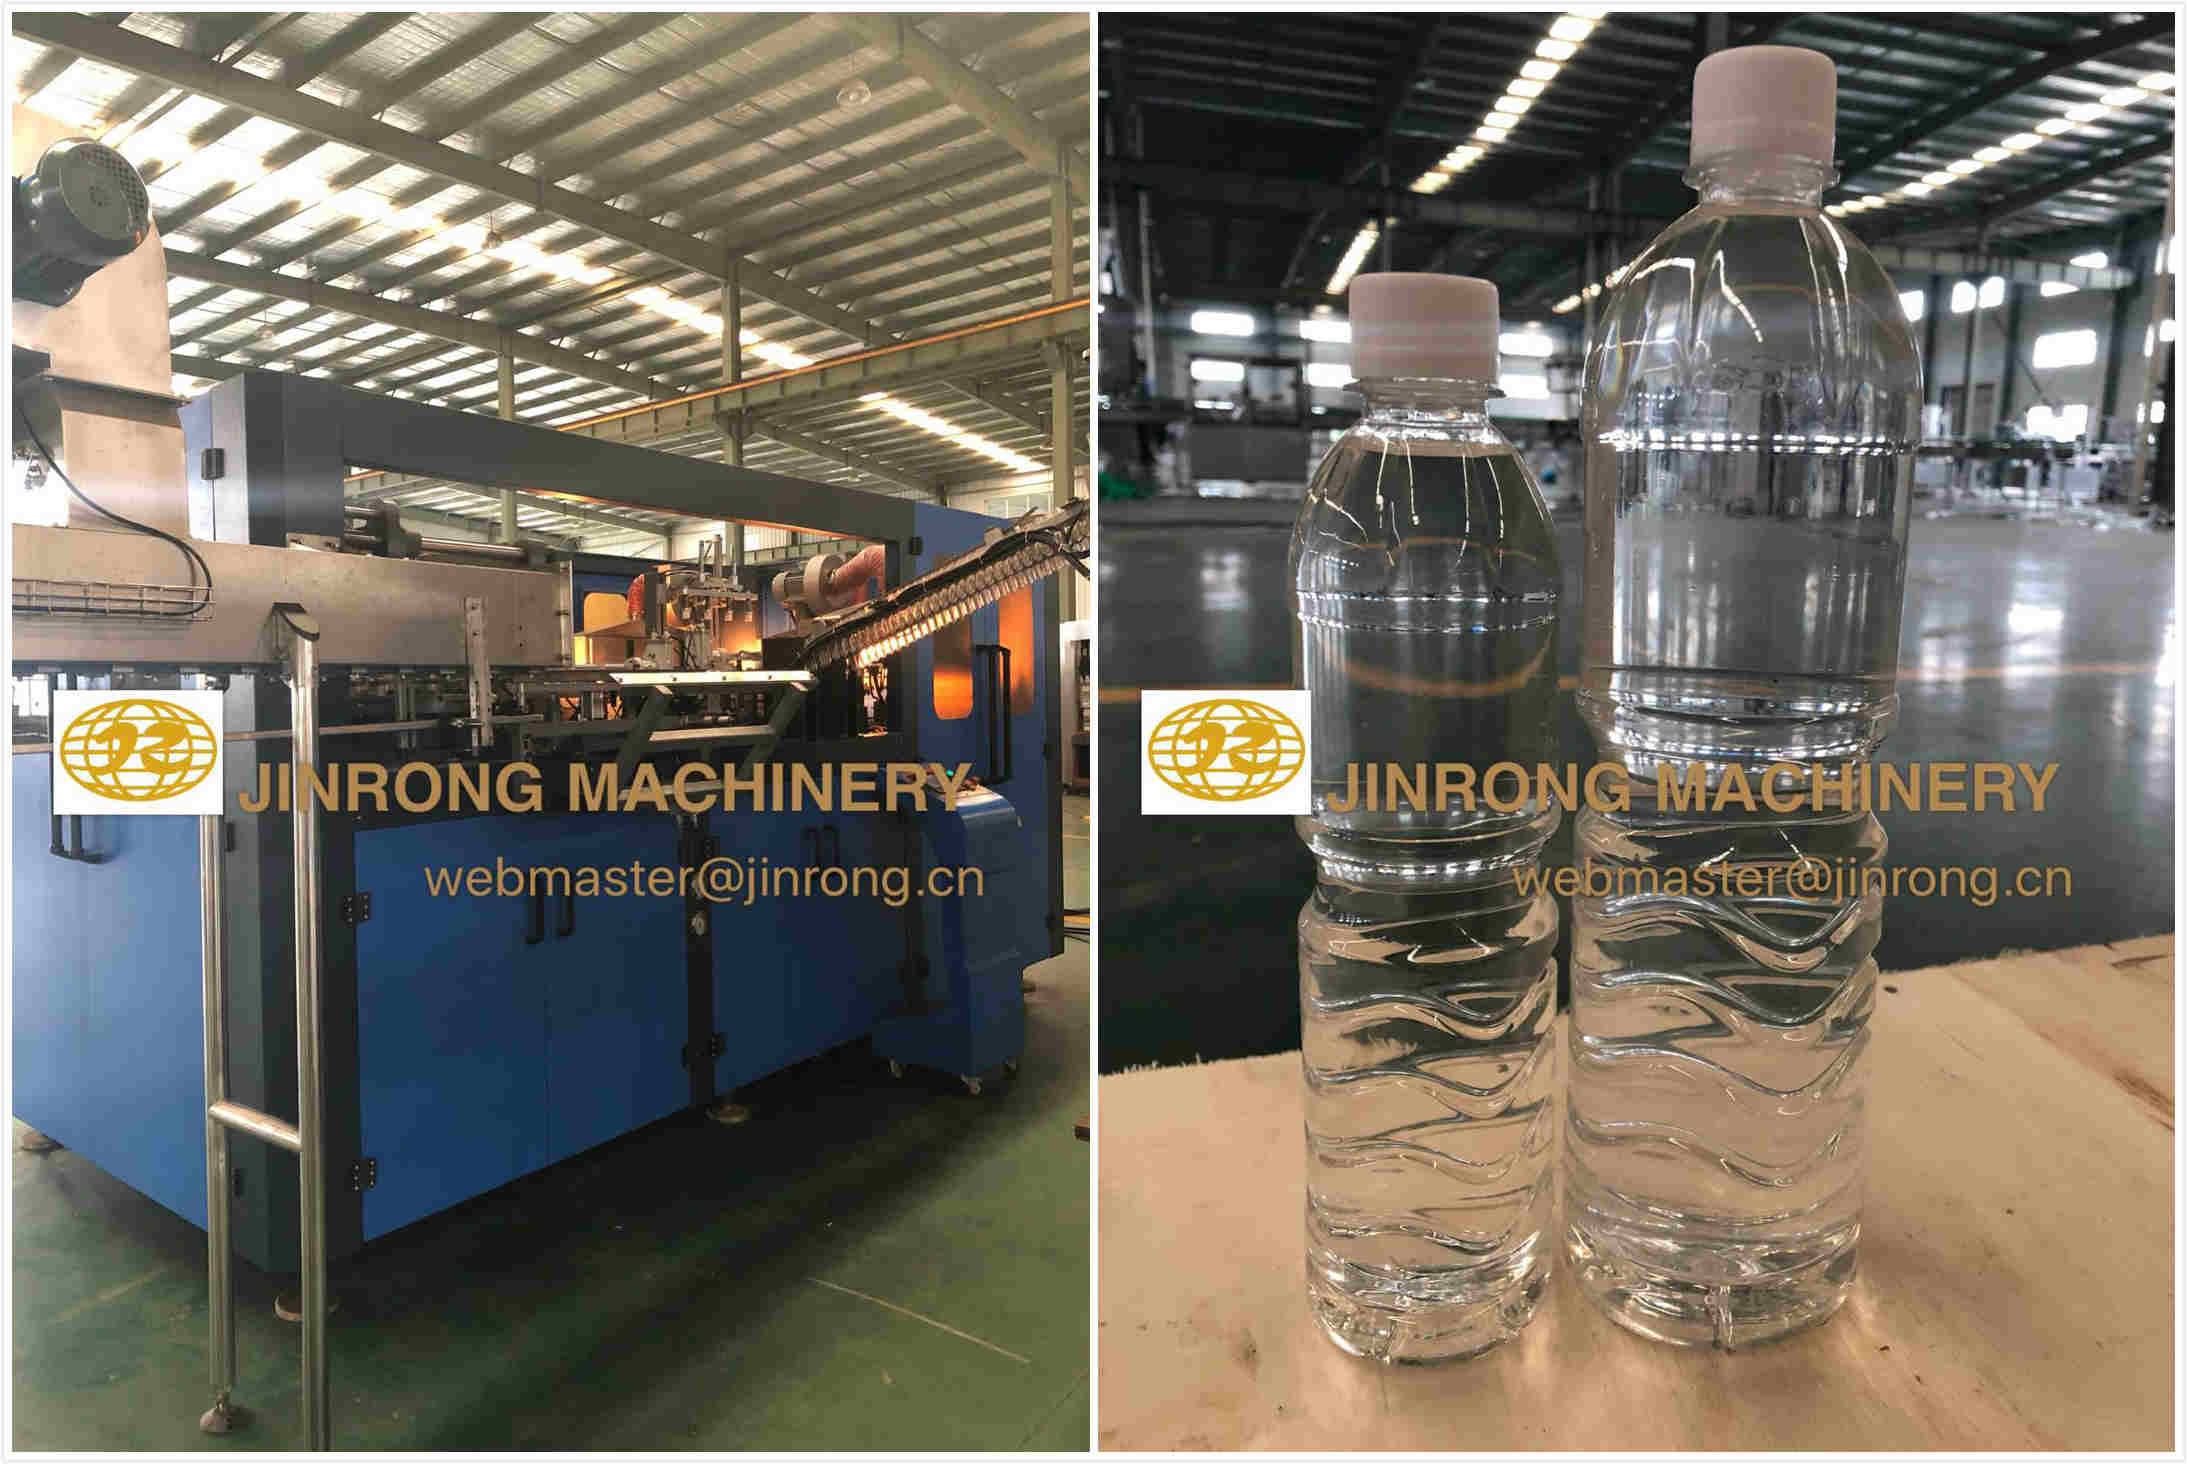 8000B/H 500ml Water Filling Production Line Passed the Inspection